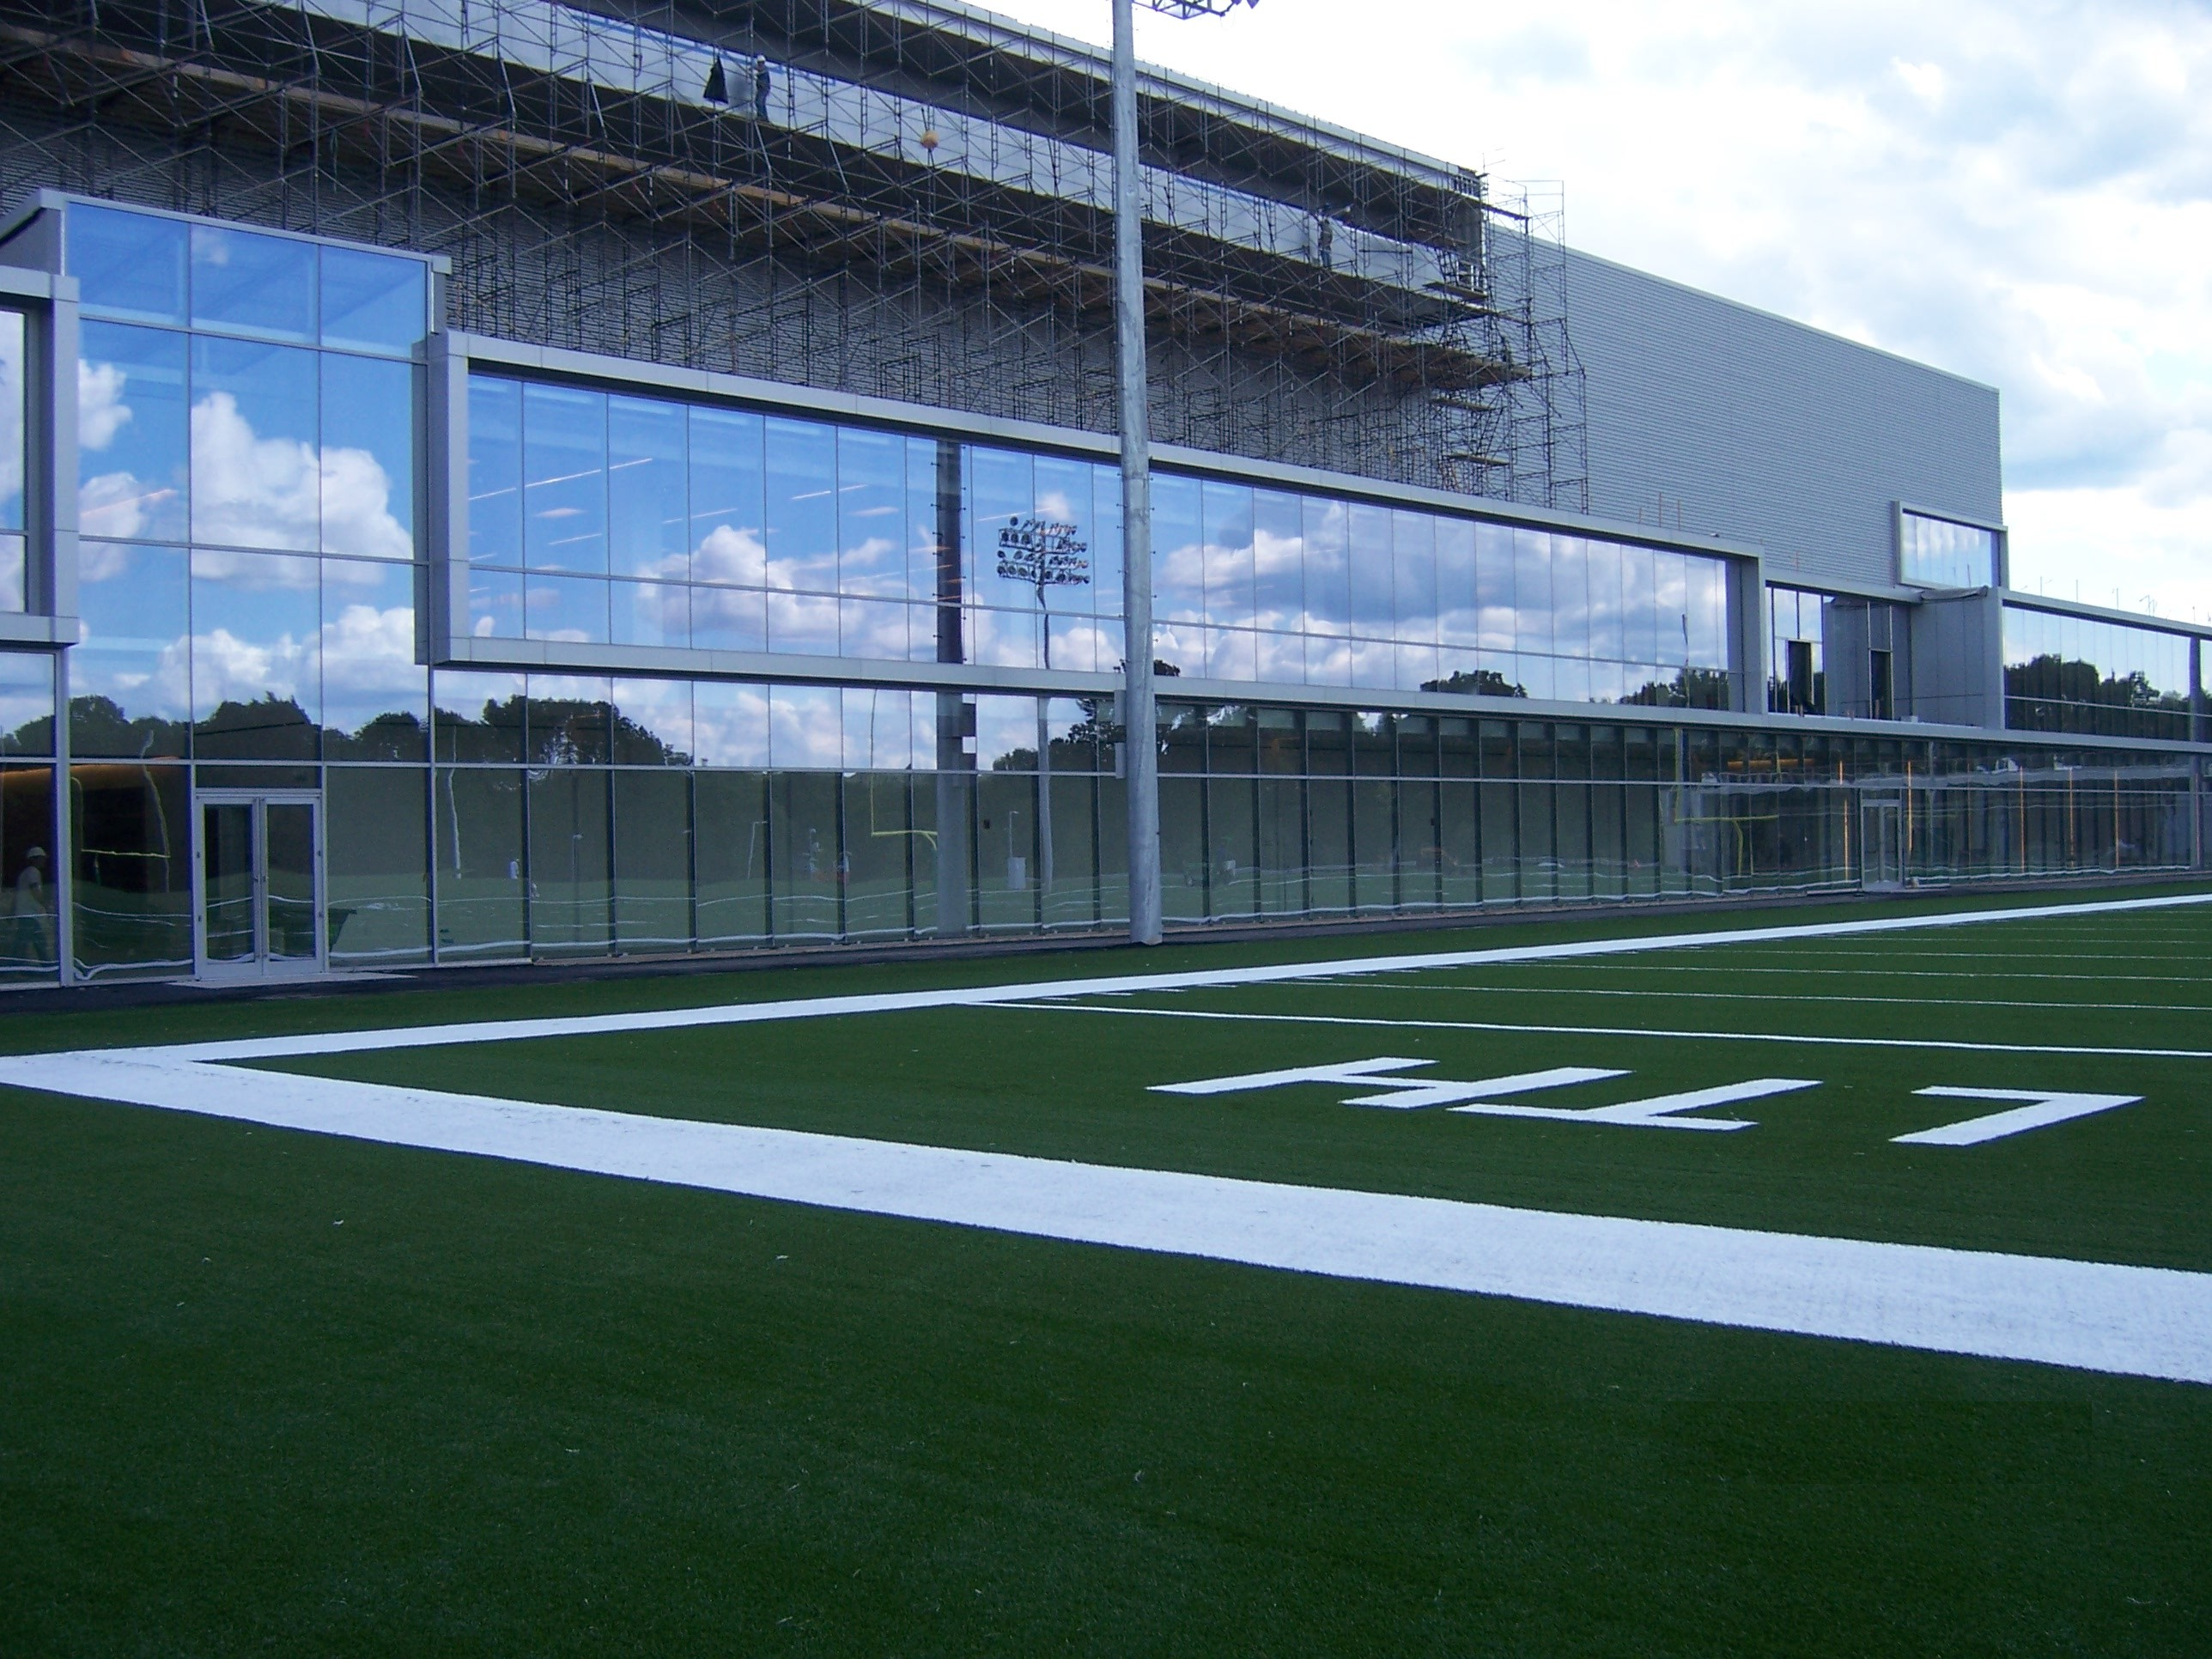 NY Jets Training Center